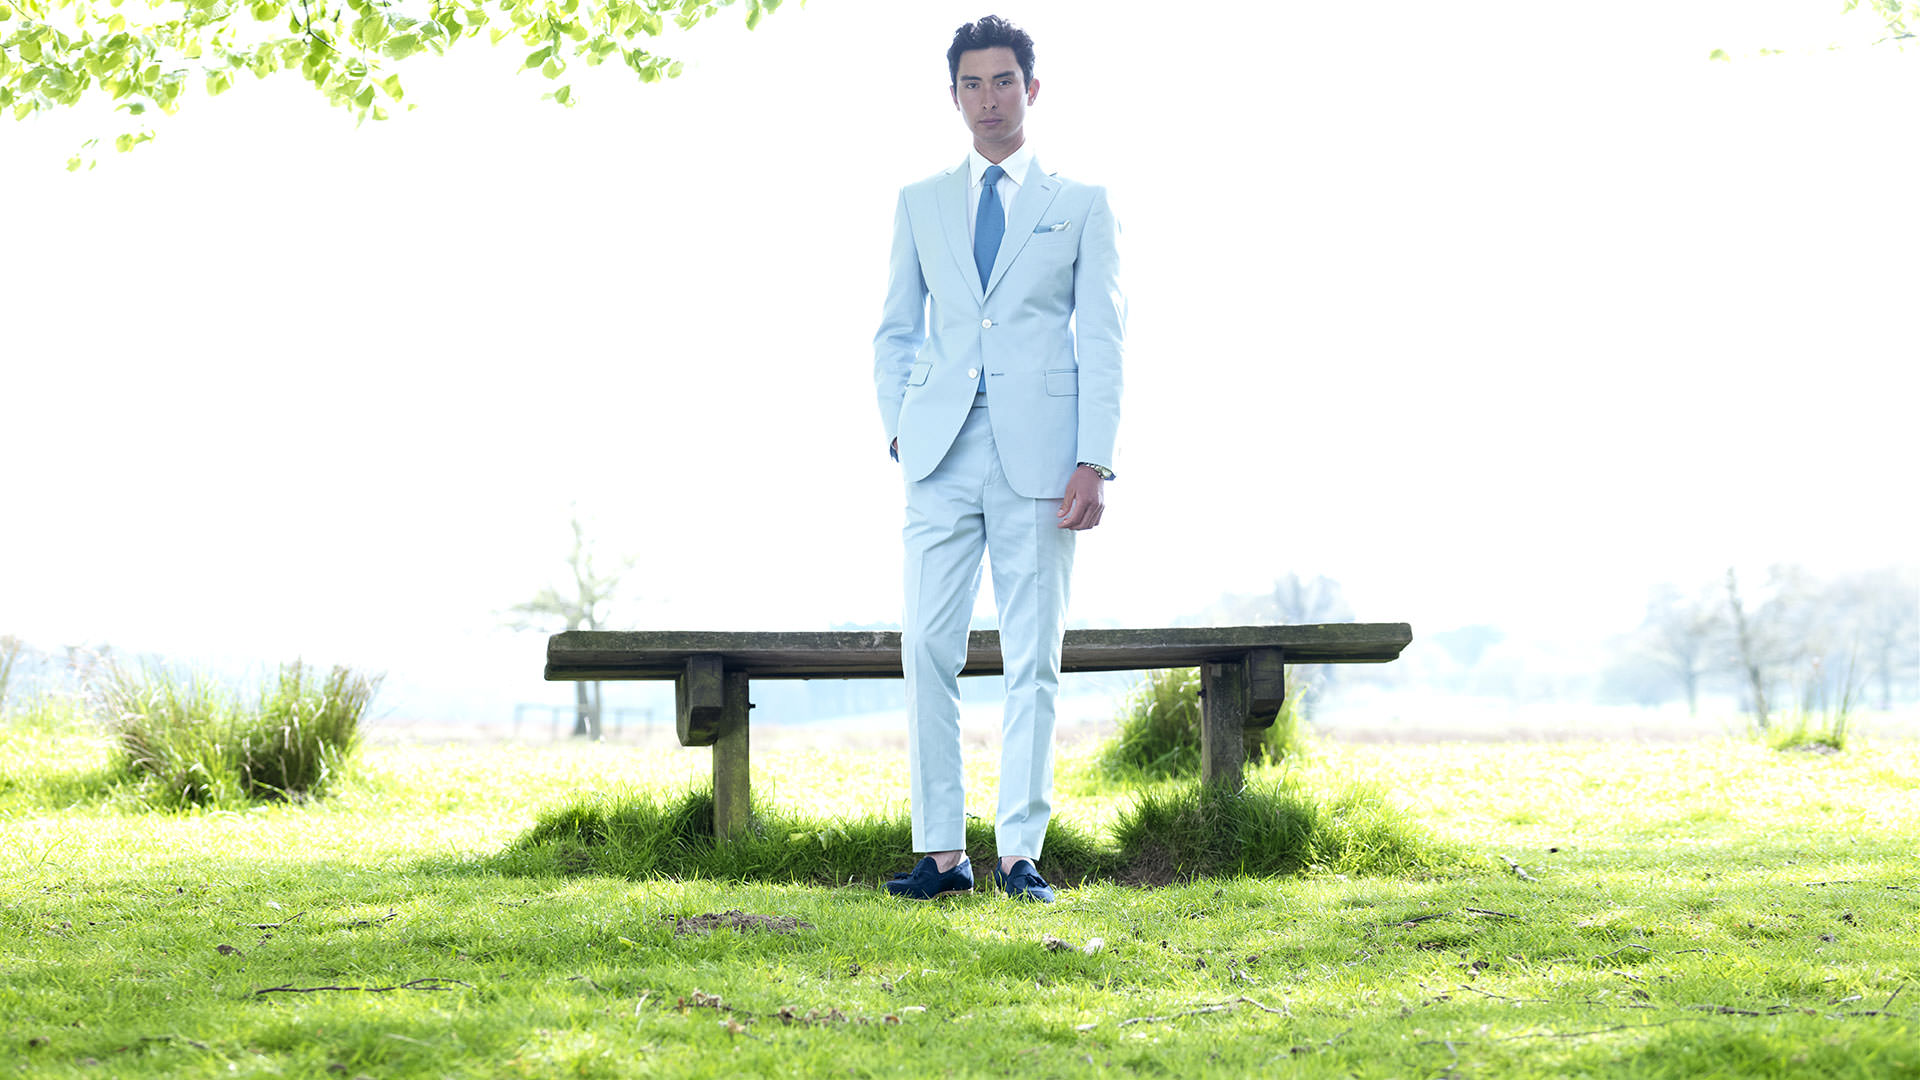 Mens fashion advertising photographer uk Gieves and hawkes